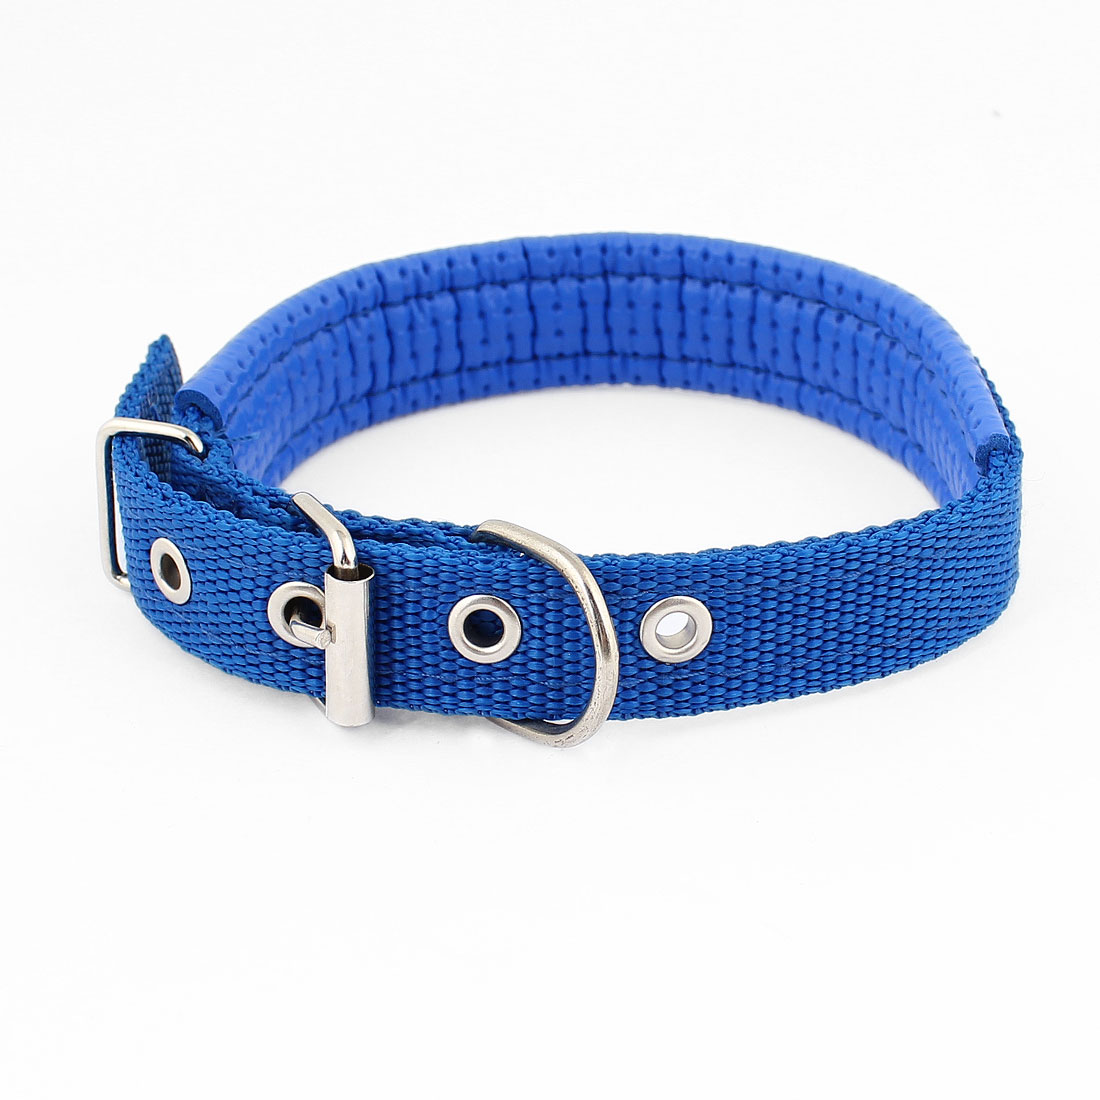 Blue Faux Leather 3cm Wide Adjustable Pet Cat Dog Doggy Puppy Collar Rope Belt